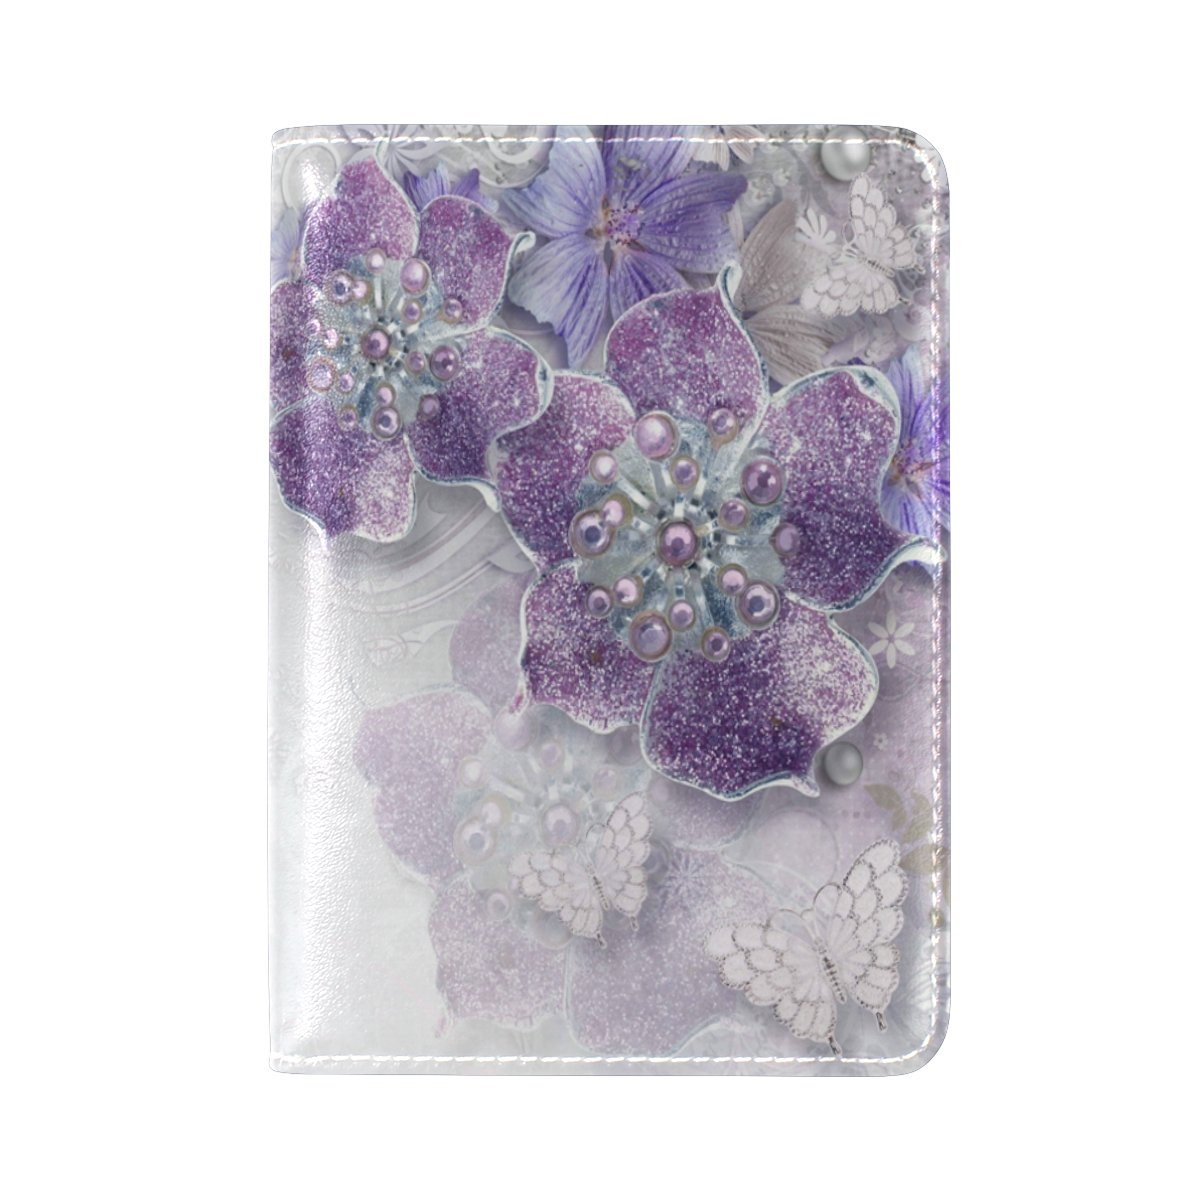 PU Leather Passport Holder Cover Case with Purple Jewellery Flowers Travel One Pocket